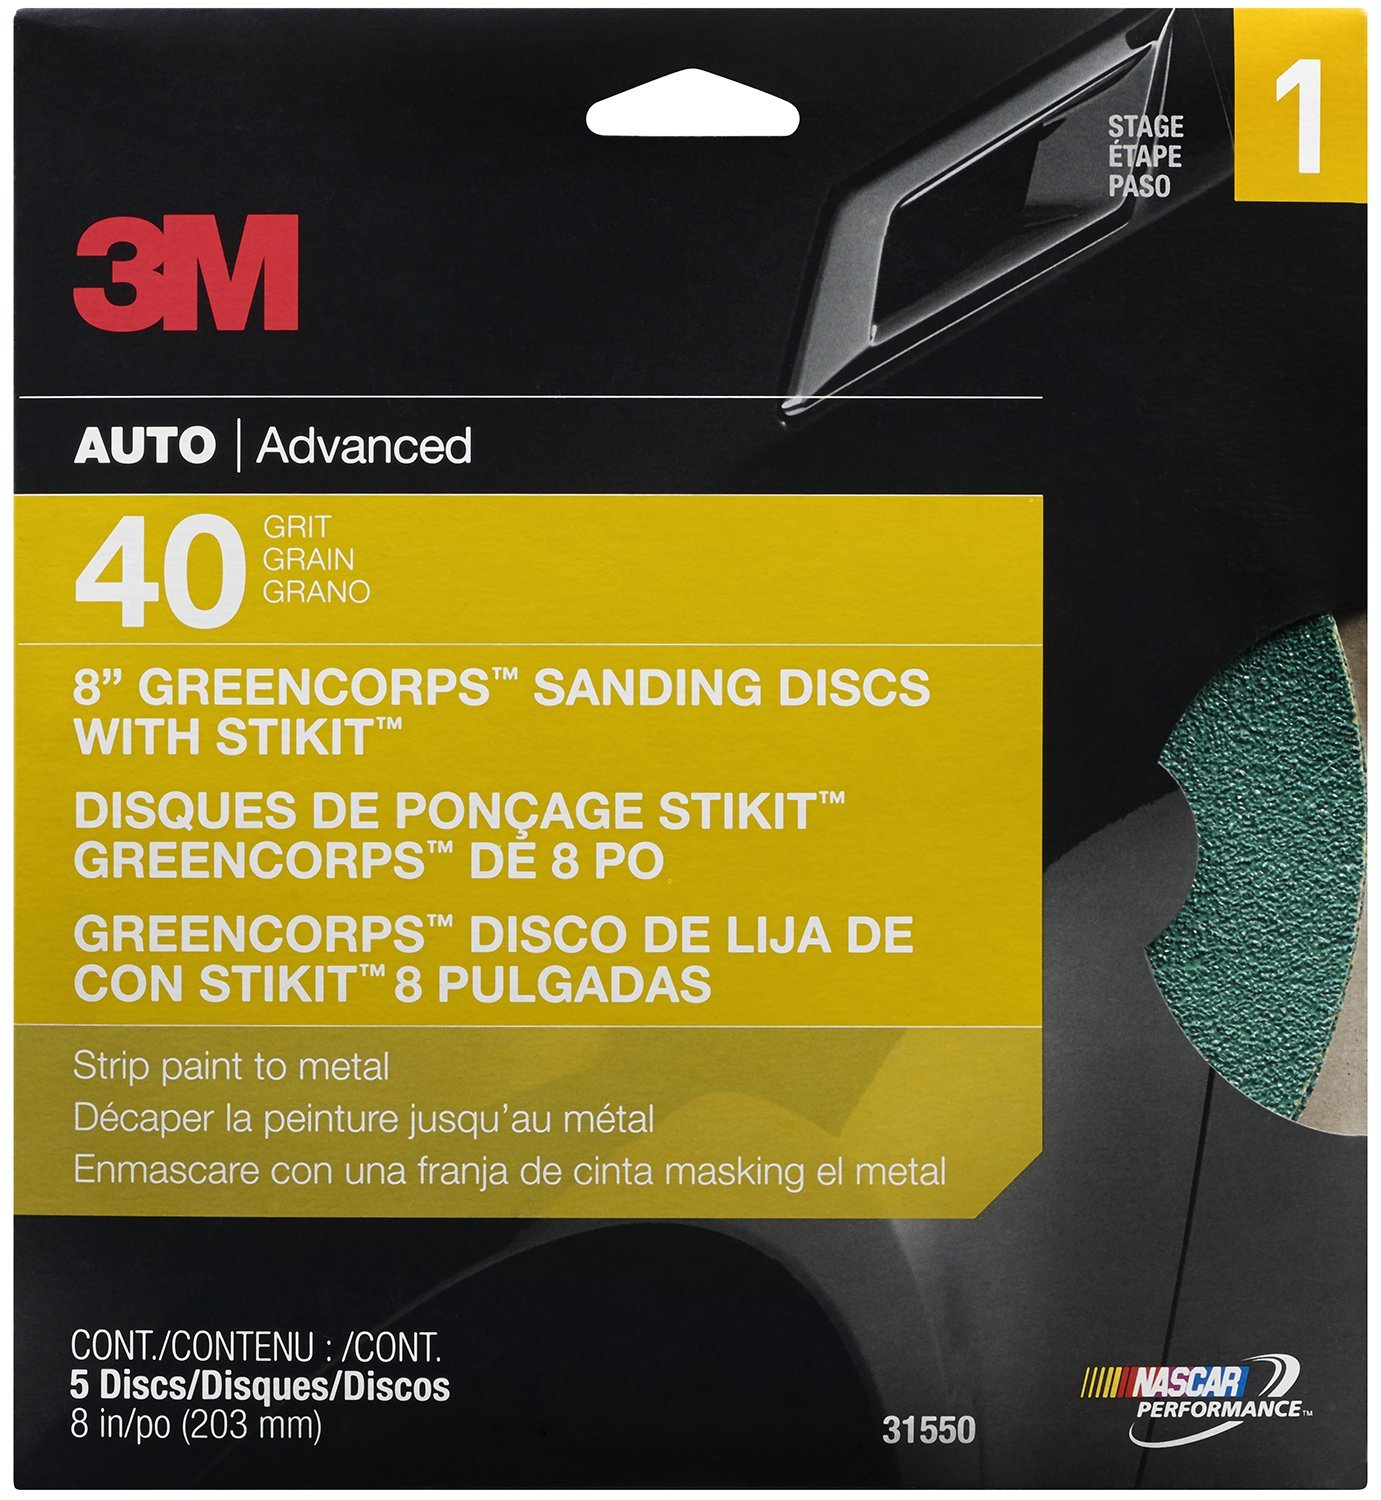 3M Green Corps Sanding Disc, 31550, 8 in, 40 grit